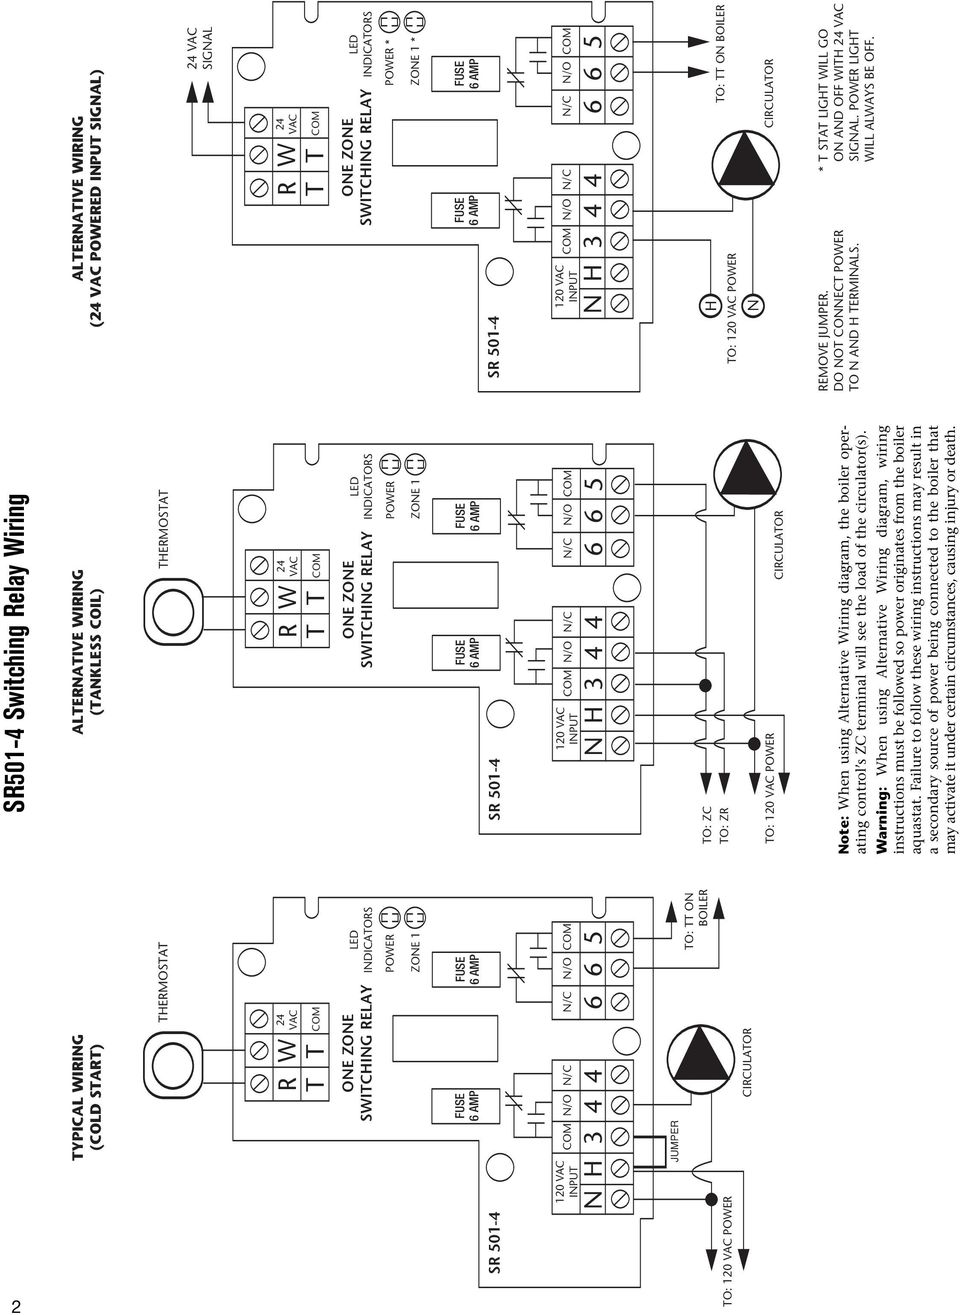 The All New Taco Zone Controls Wiring Guide Pdf Diagram Symbols Chart Warning When Using Alternative Instructions Must Be Followed So Power Originates